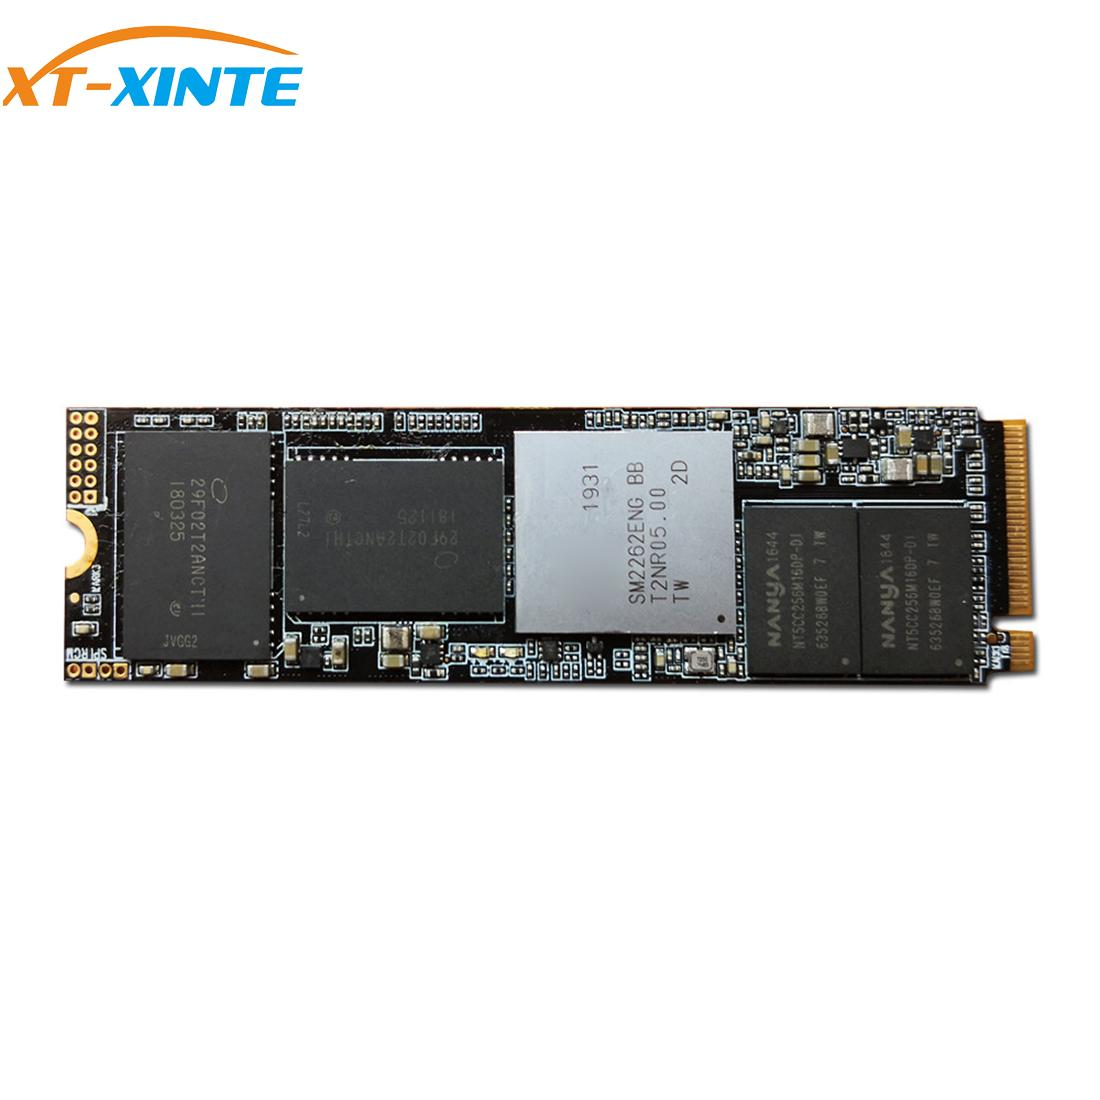 2TB M.2 SSD M2 PCIe NVME Solid State Drive Internal High-speed Read Write 3300MB/s 3000MB/s for Laptop Desktop PC Hard Drive HDD